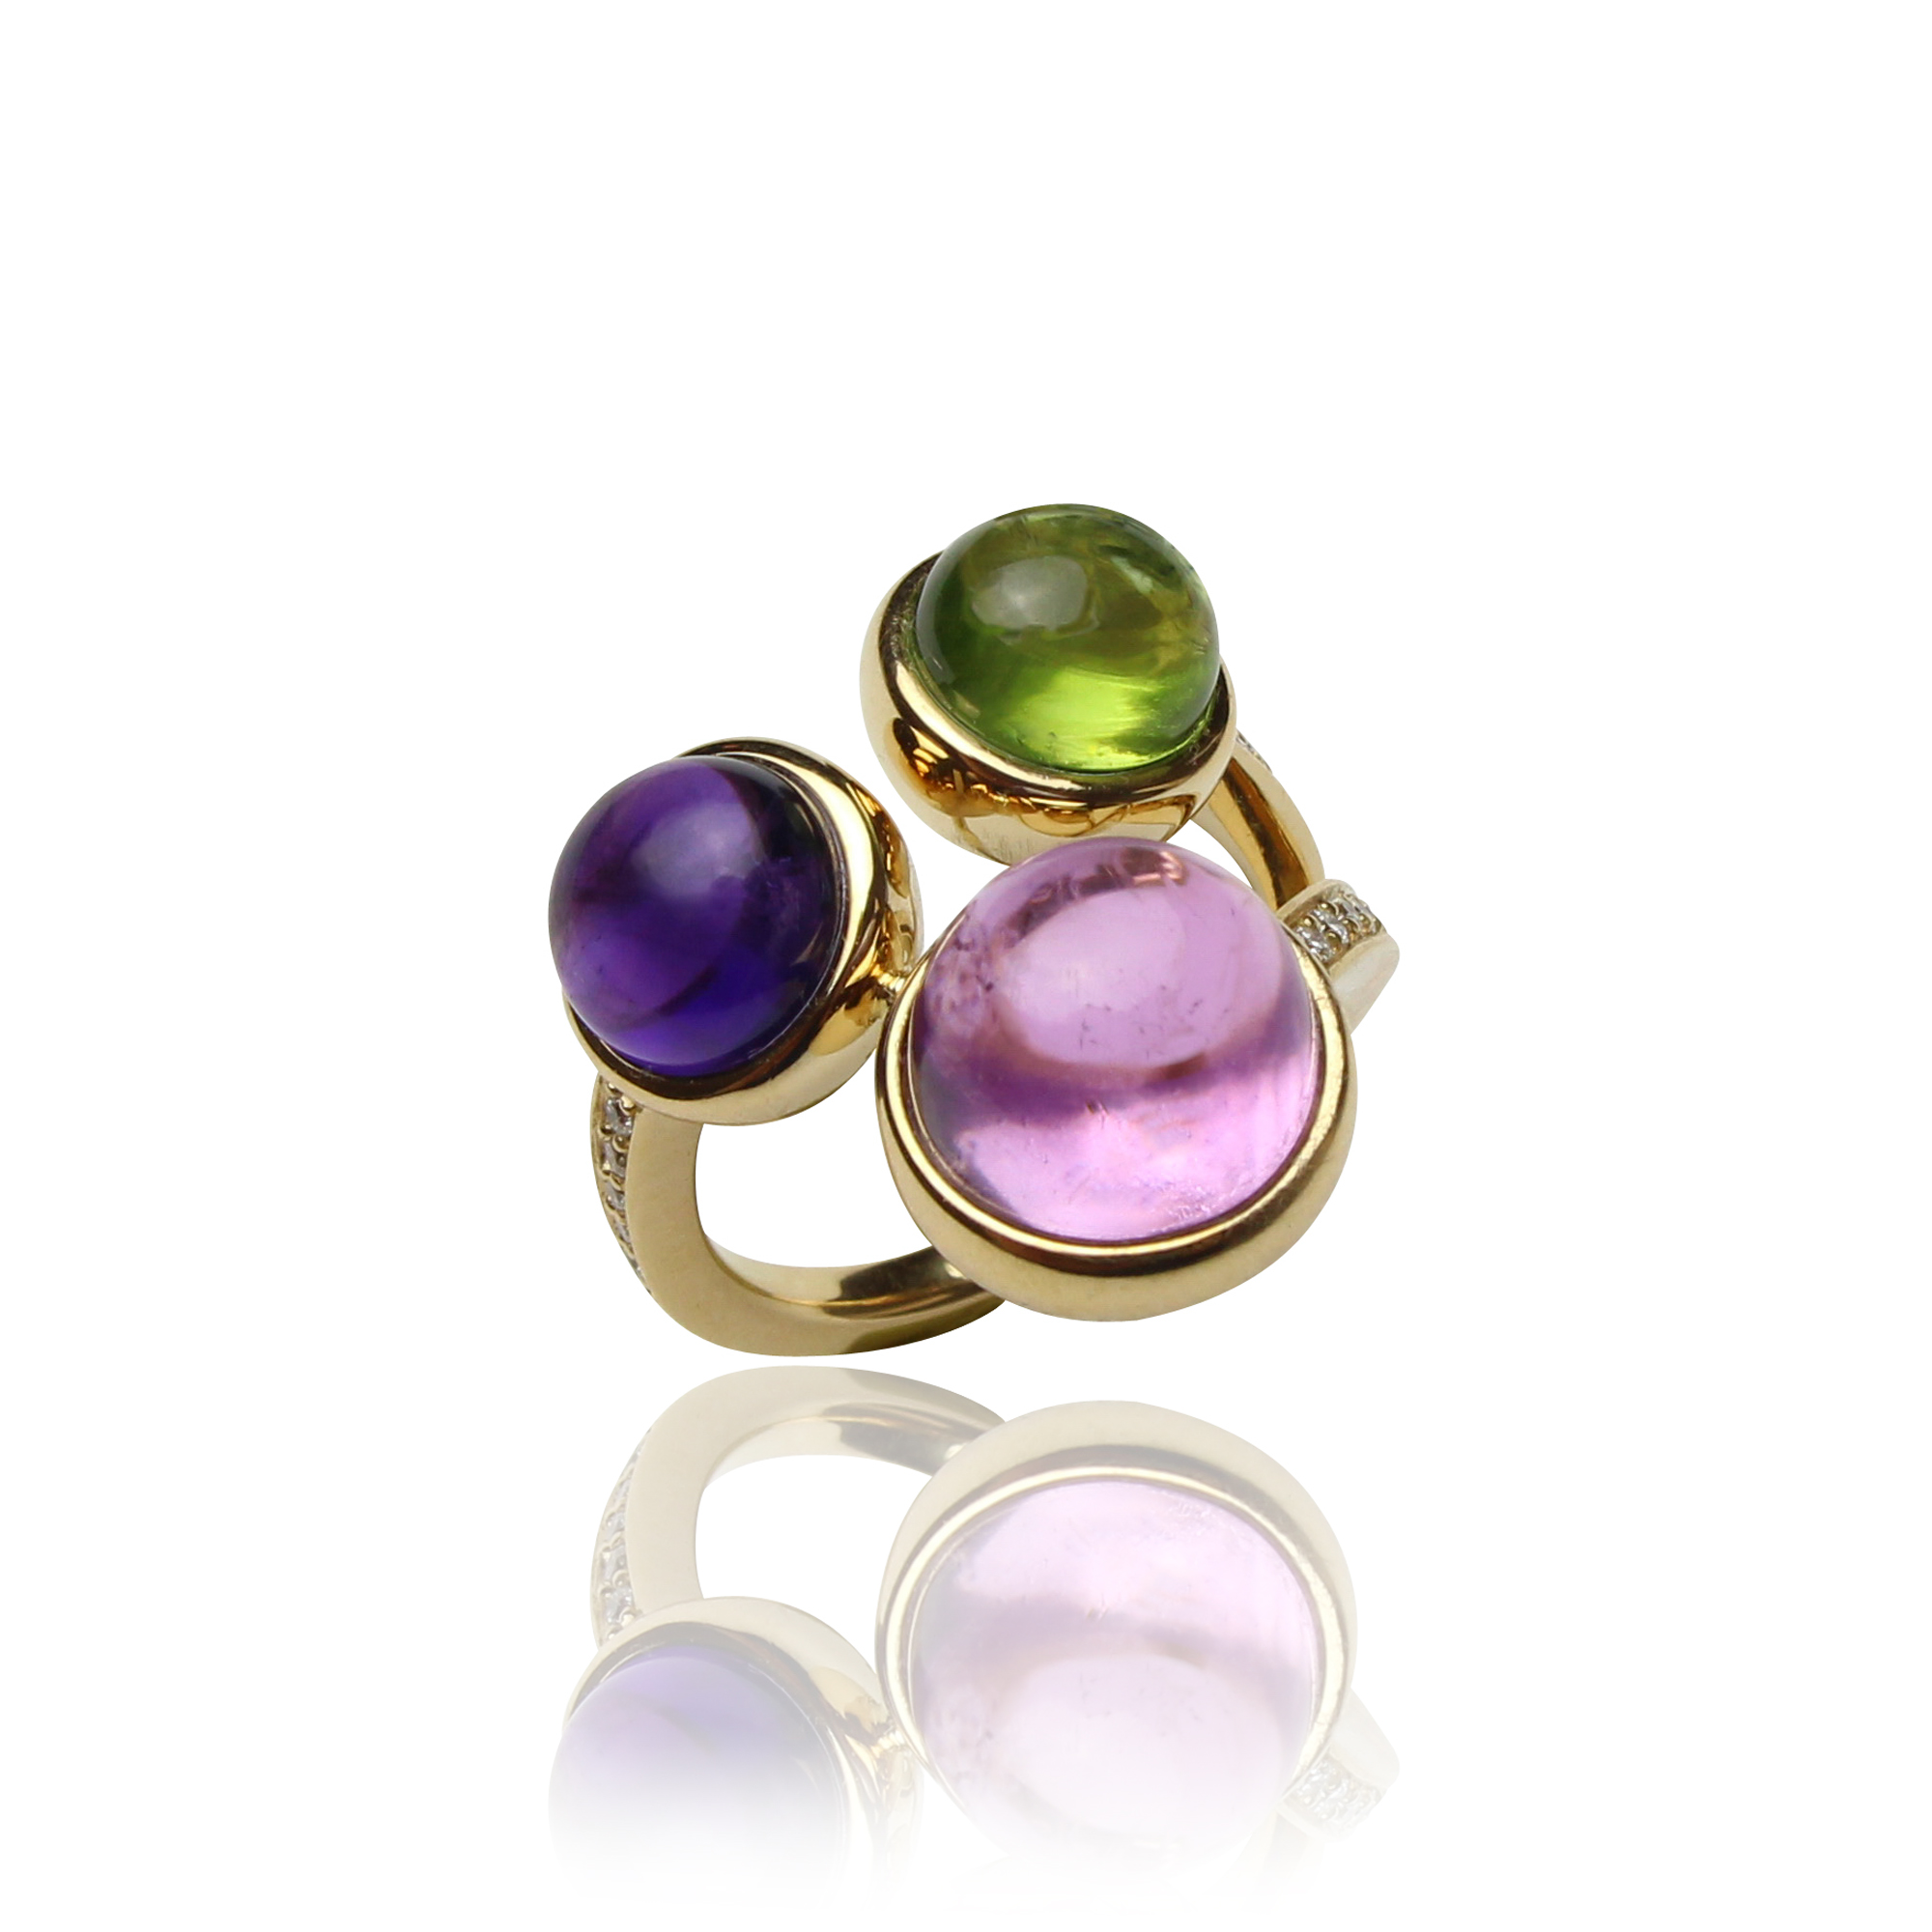 ring arcobaleno yellow gold 18 carat kunzite amethyst,peridot and diamonds